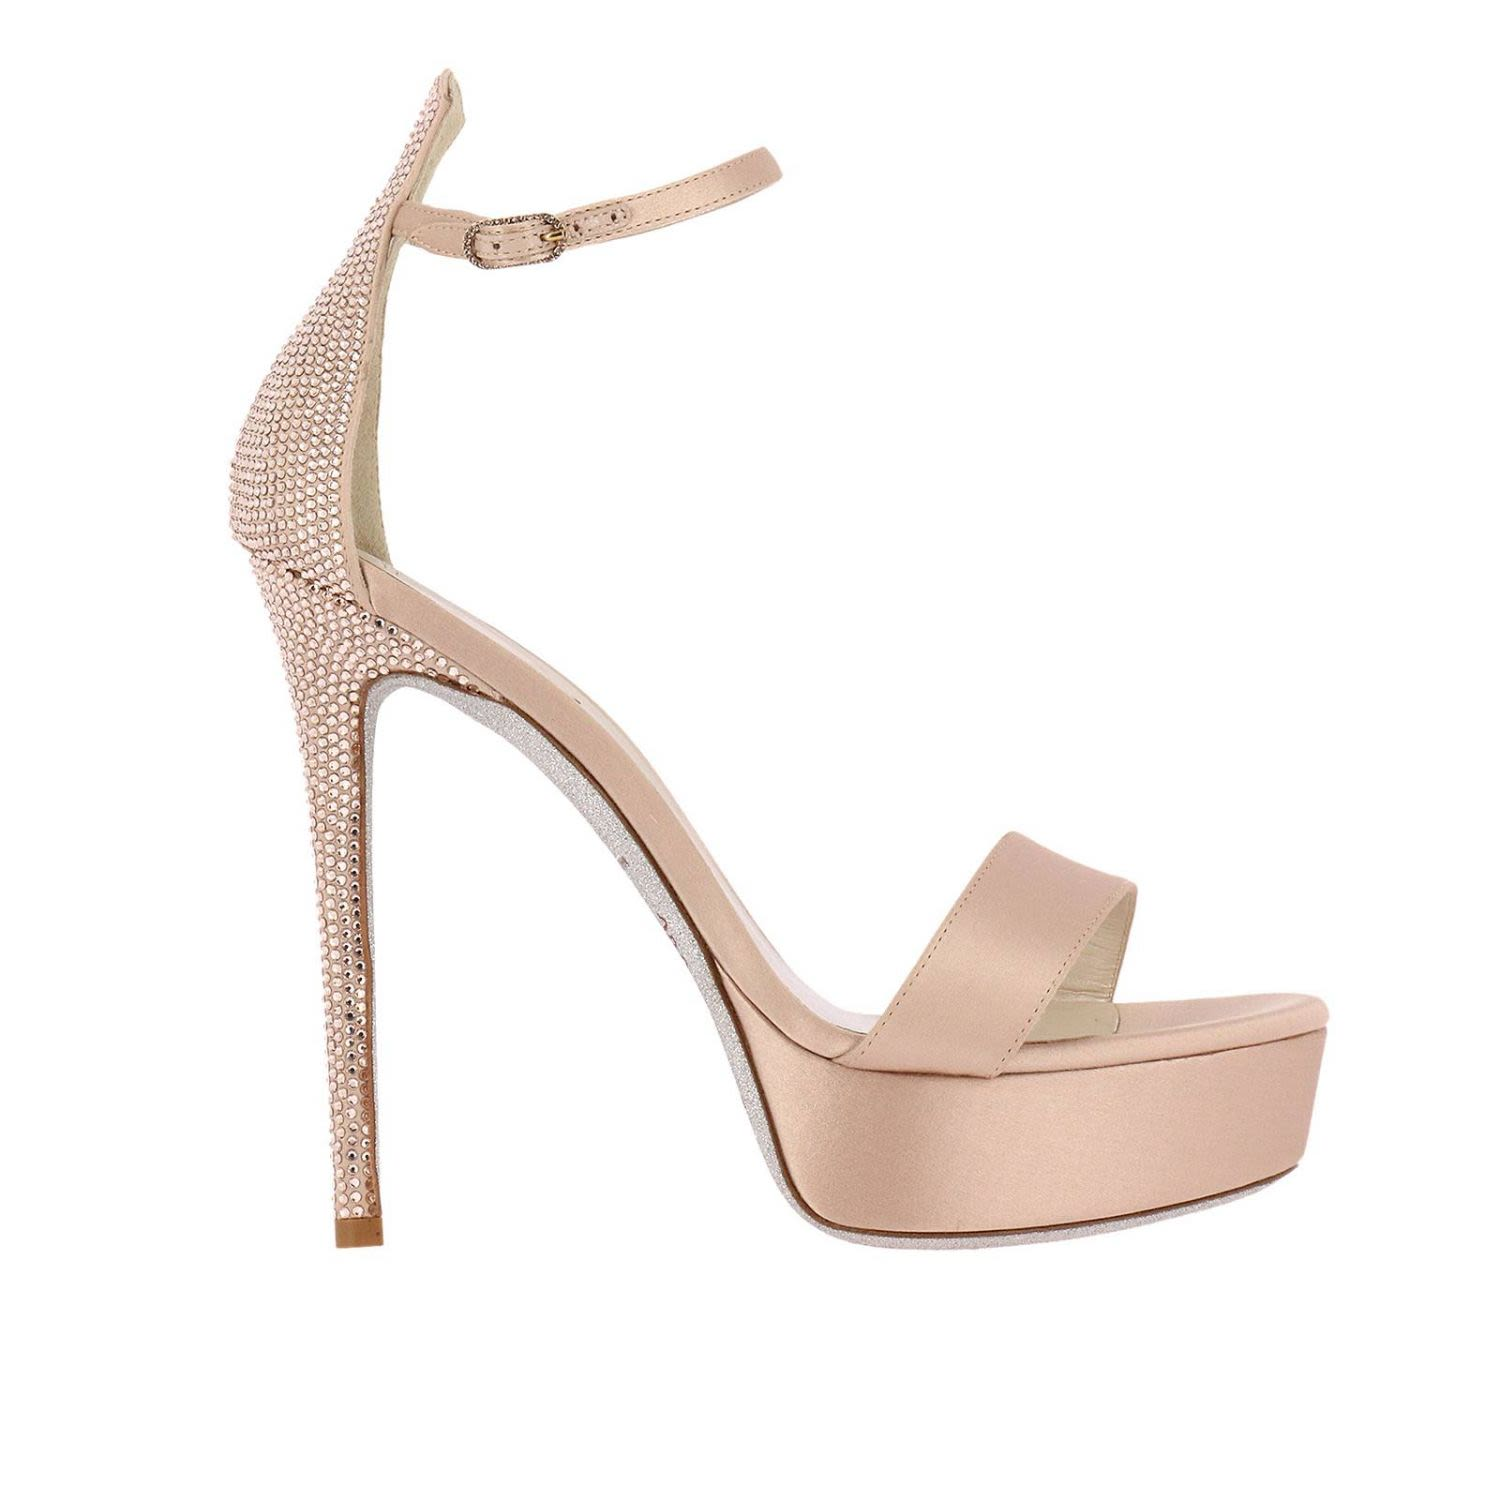 Heeled Sandals Shoes Women Rene Caovilla